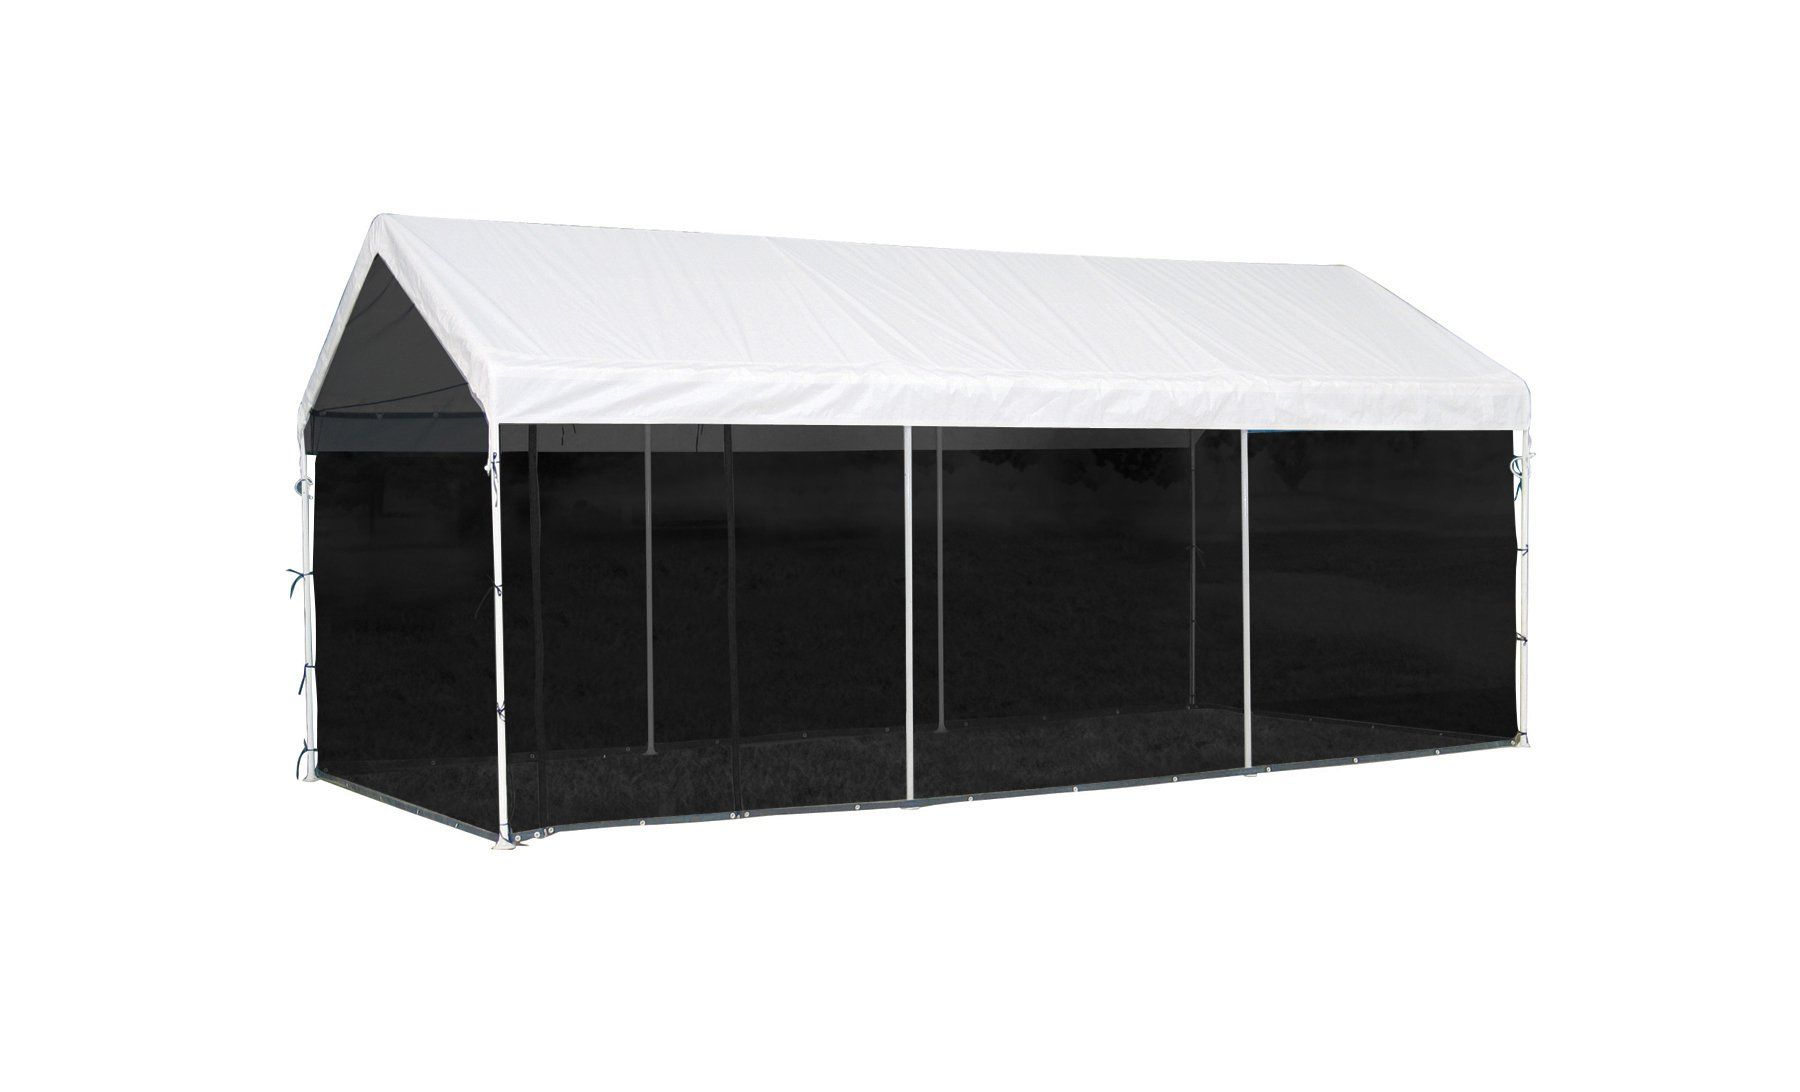 Key Parts 25777 Screen Kit 10X20. Constructed of quality durable poly screen material  sc 1 st  Pinterest & Key Parts 25777 Screen Kit 10X20. Constructed of quality durable ...